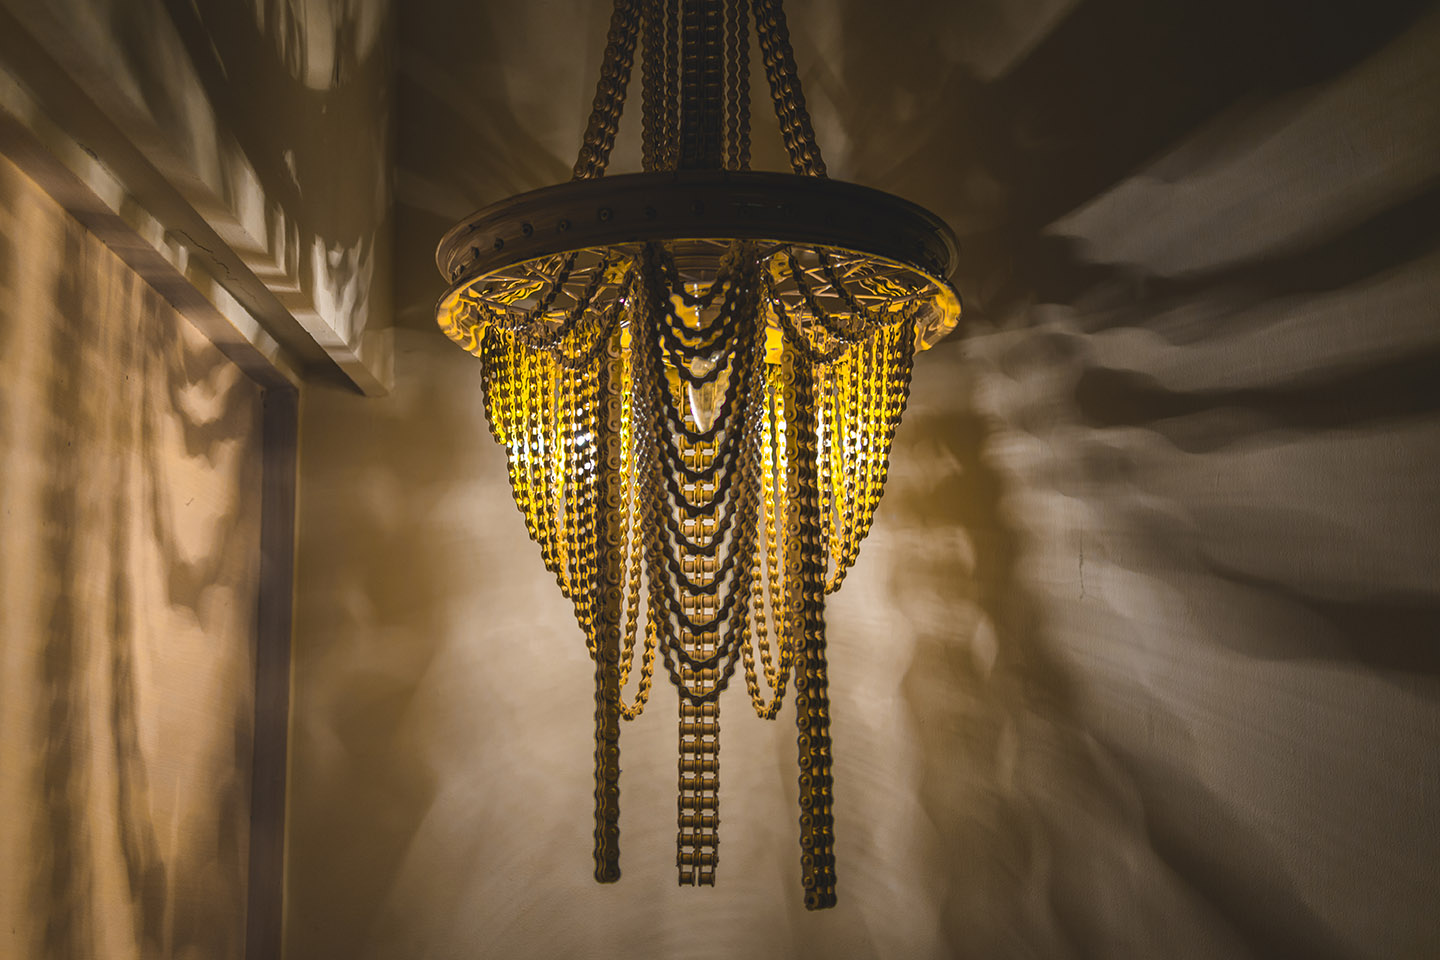 Cycle Chain Light Chandilier